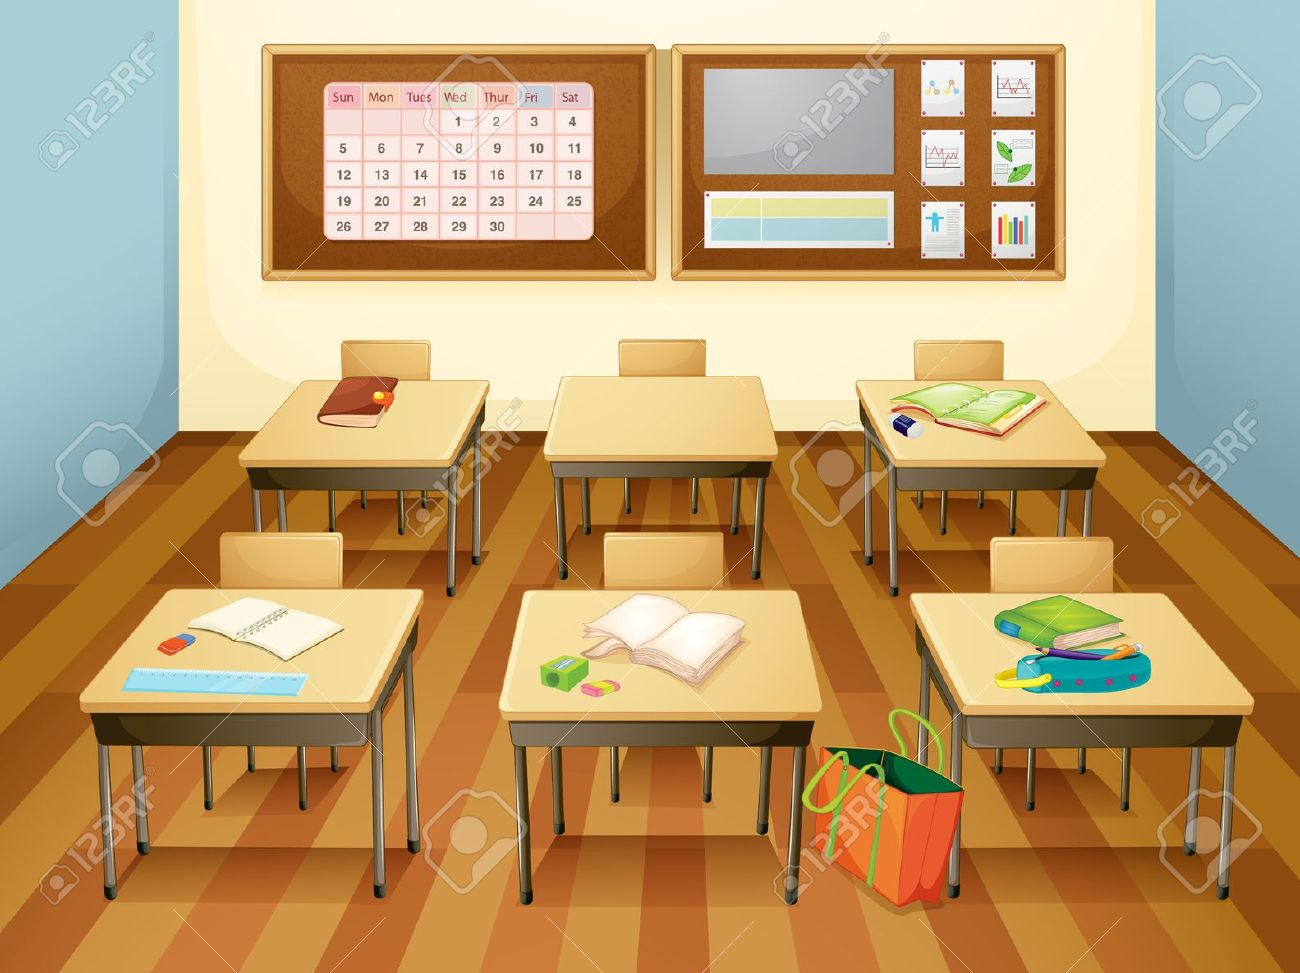 Classroom pictures clipart svg freeuse stock Empty kindergarten classroom clipart 3 » Clipart Station svg freeuse stock